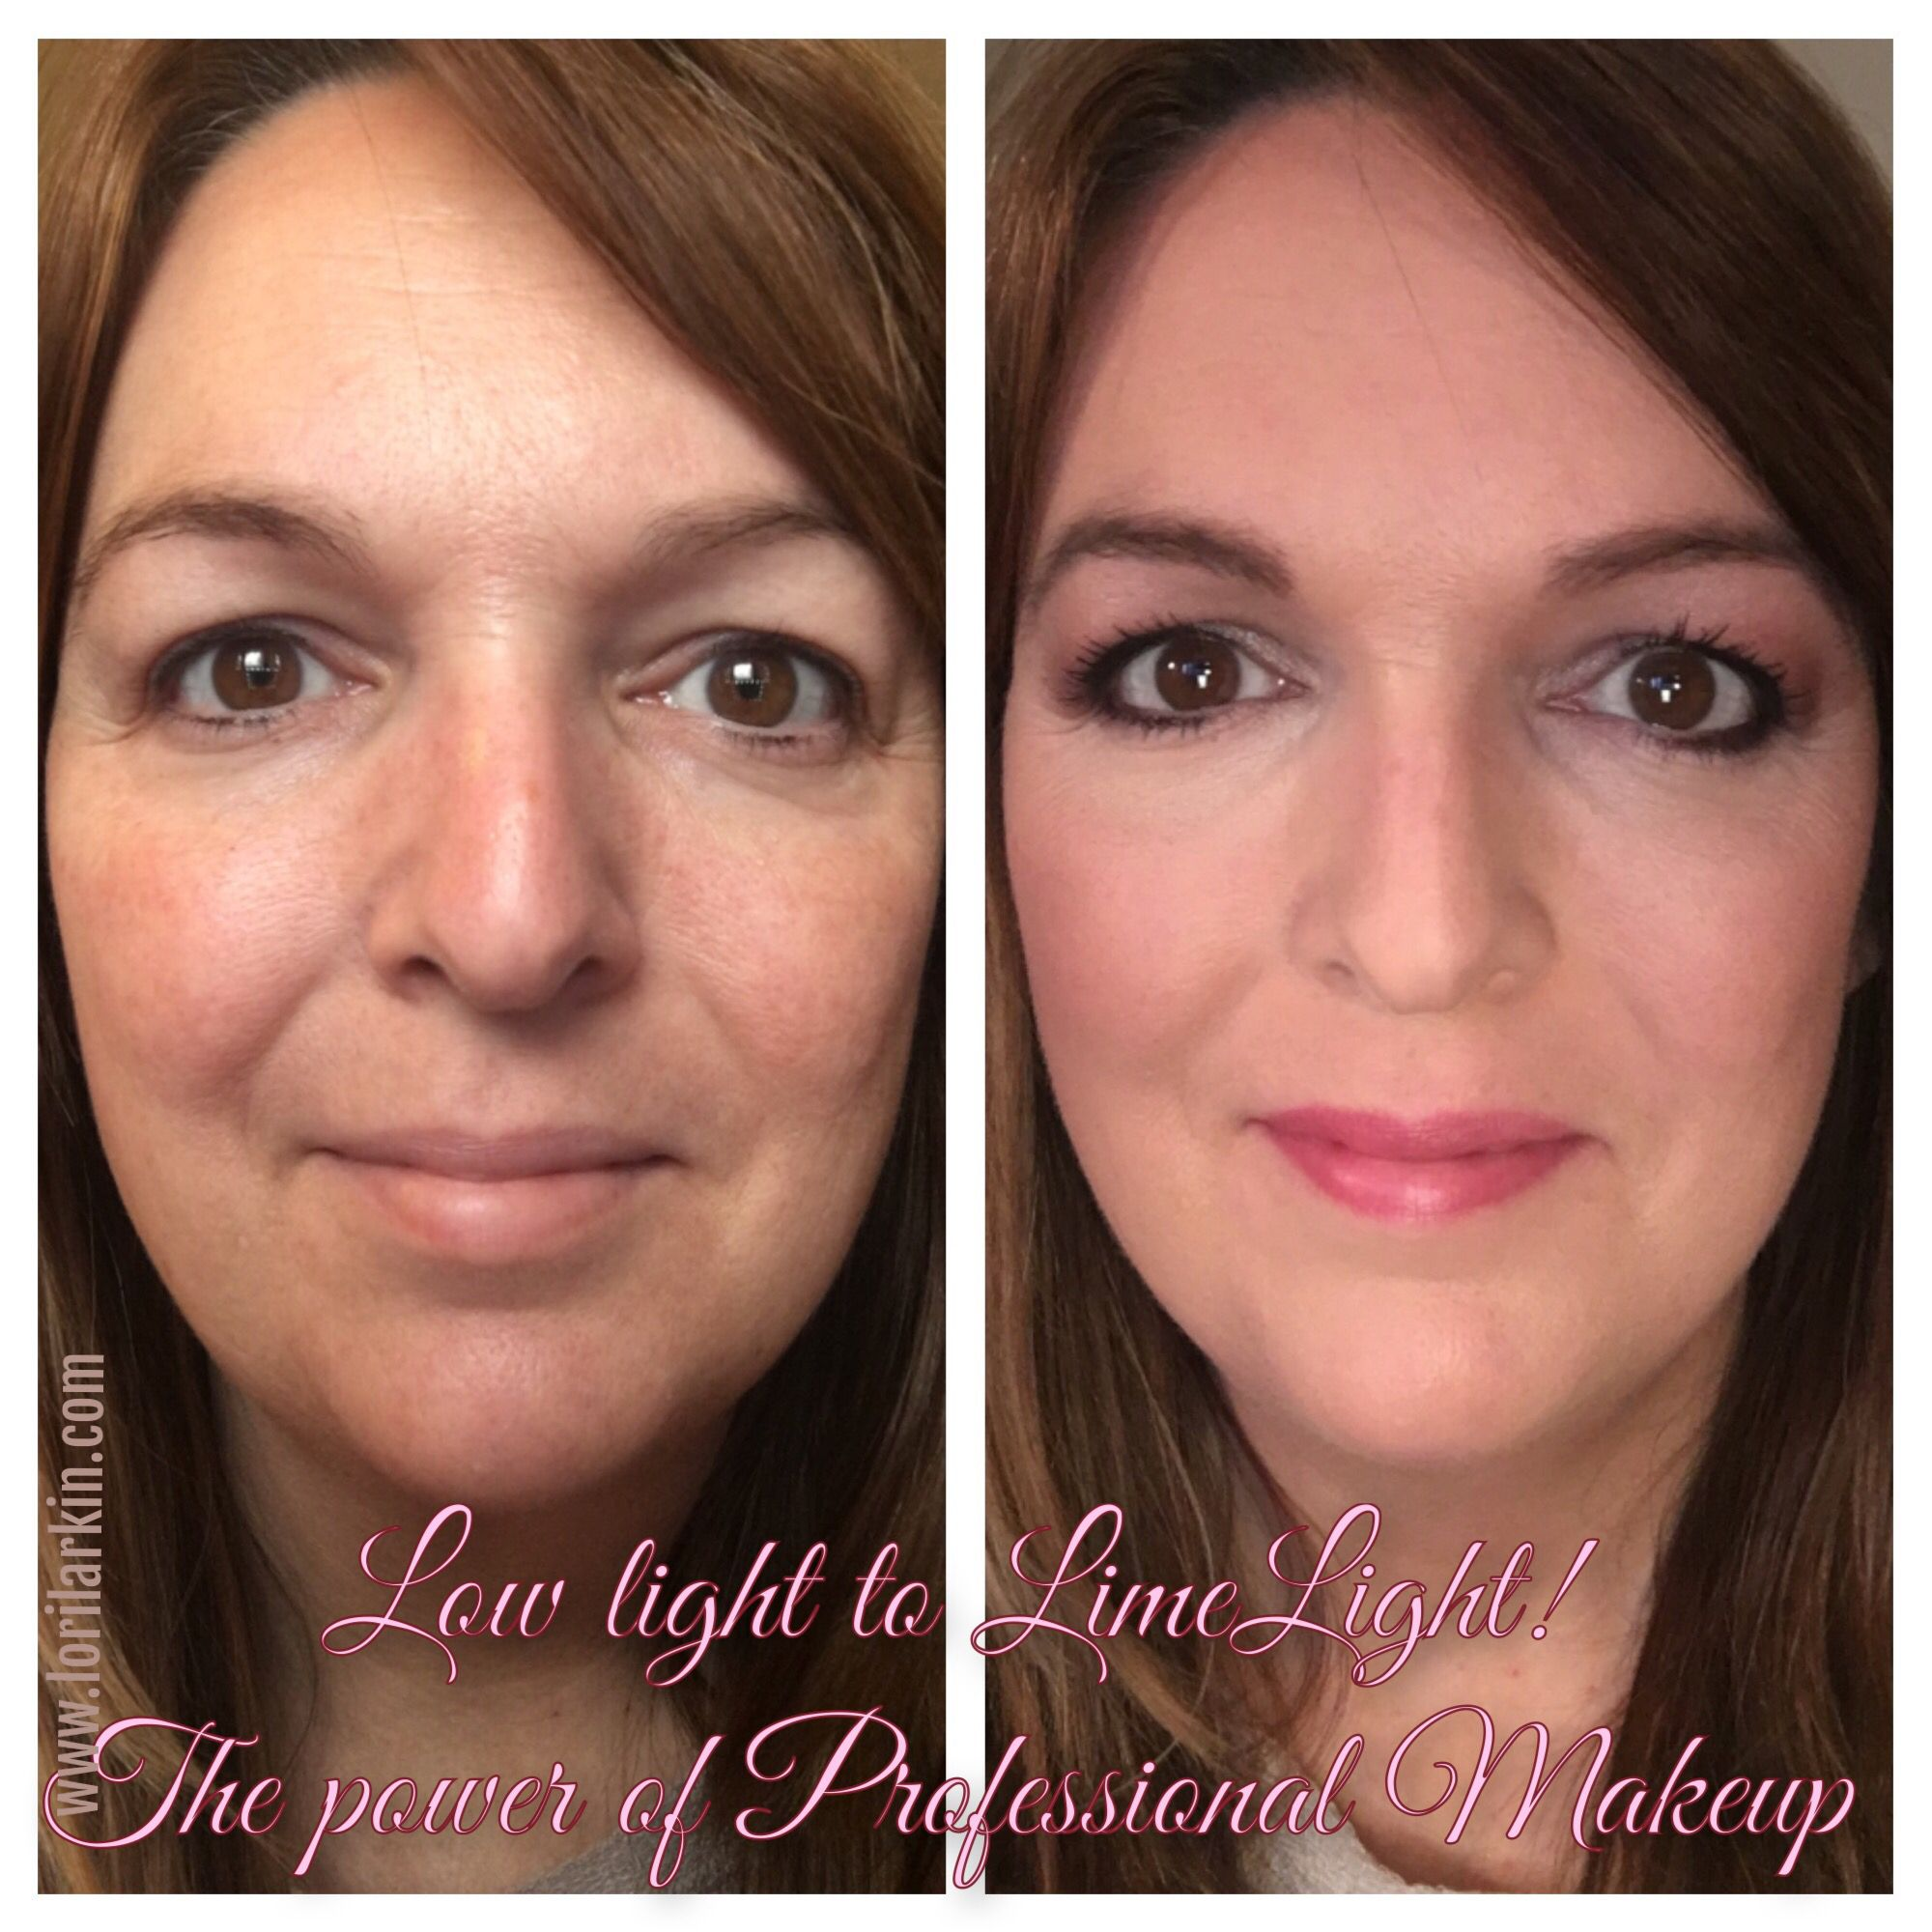 My personal before & after! LimeLight products have